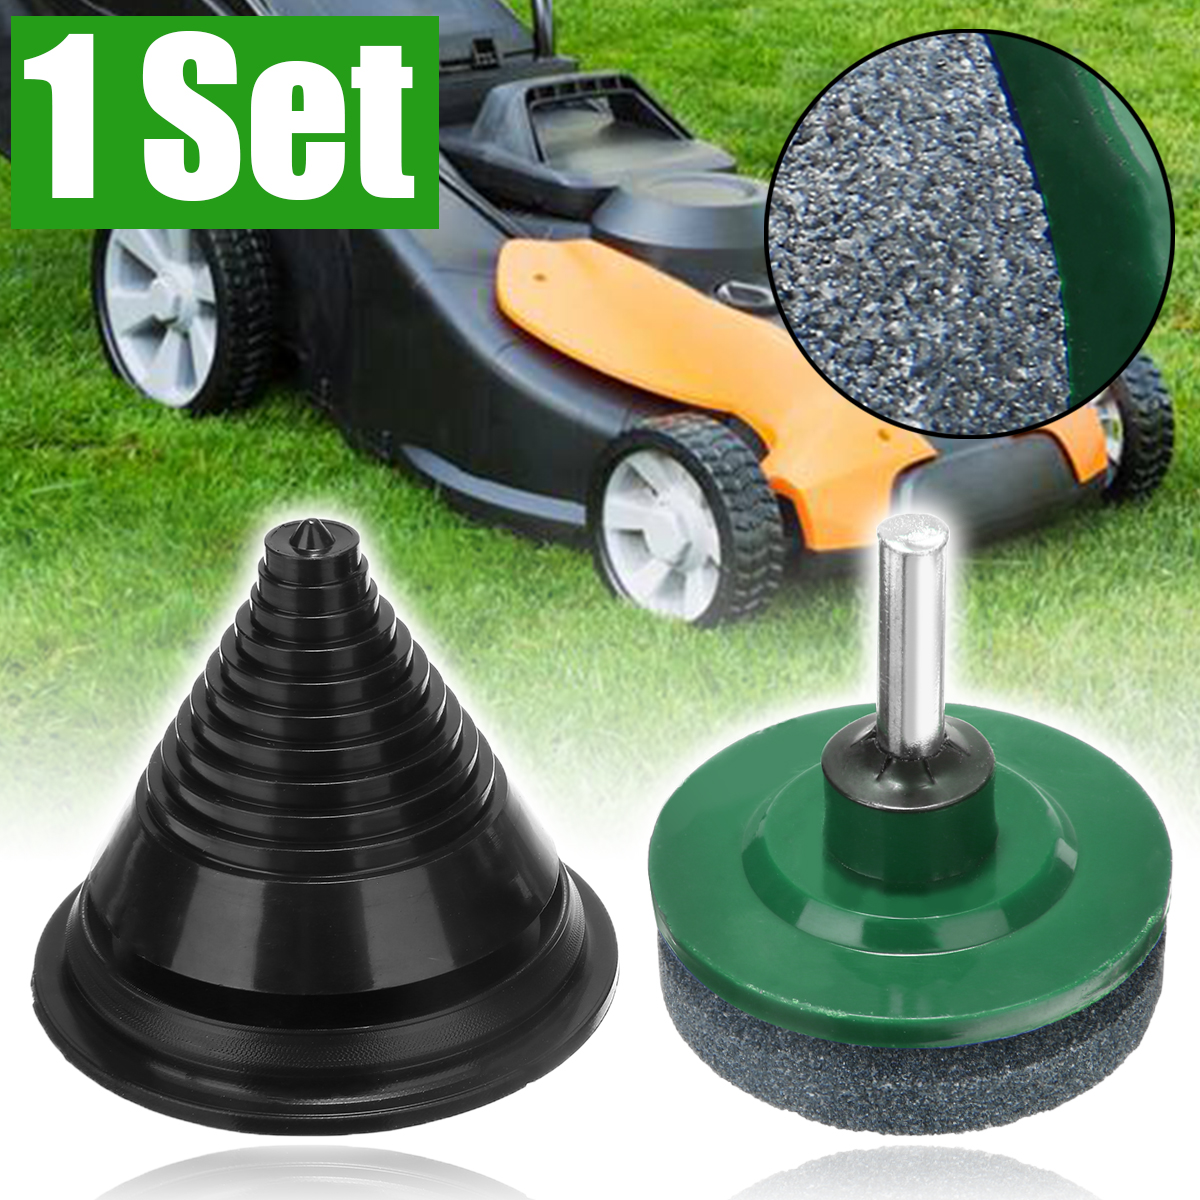 Rotary Lawn Mower Metal Faster Blade Balancer Tough Sharpener Grinding Garden Tool